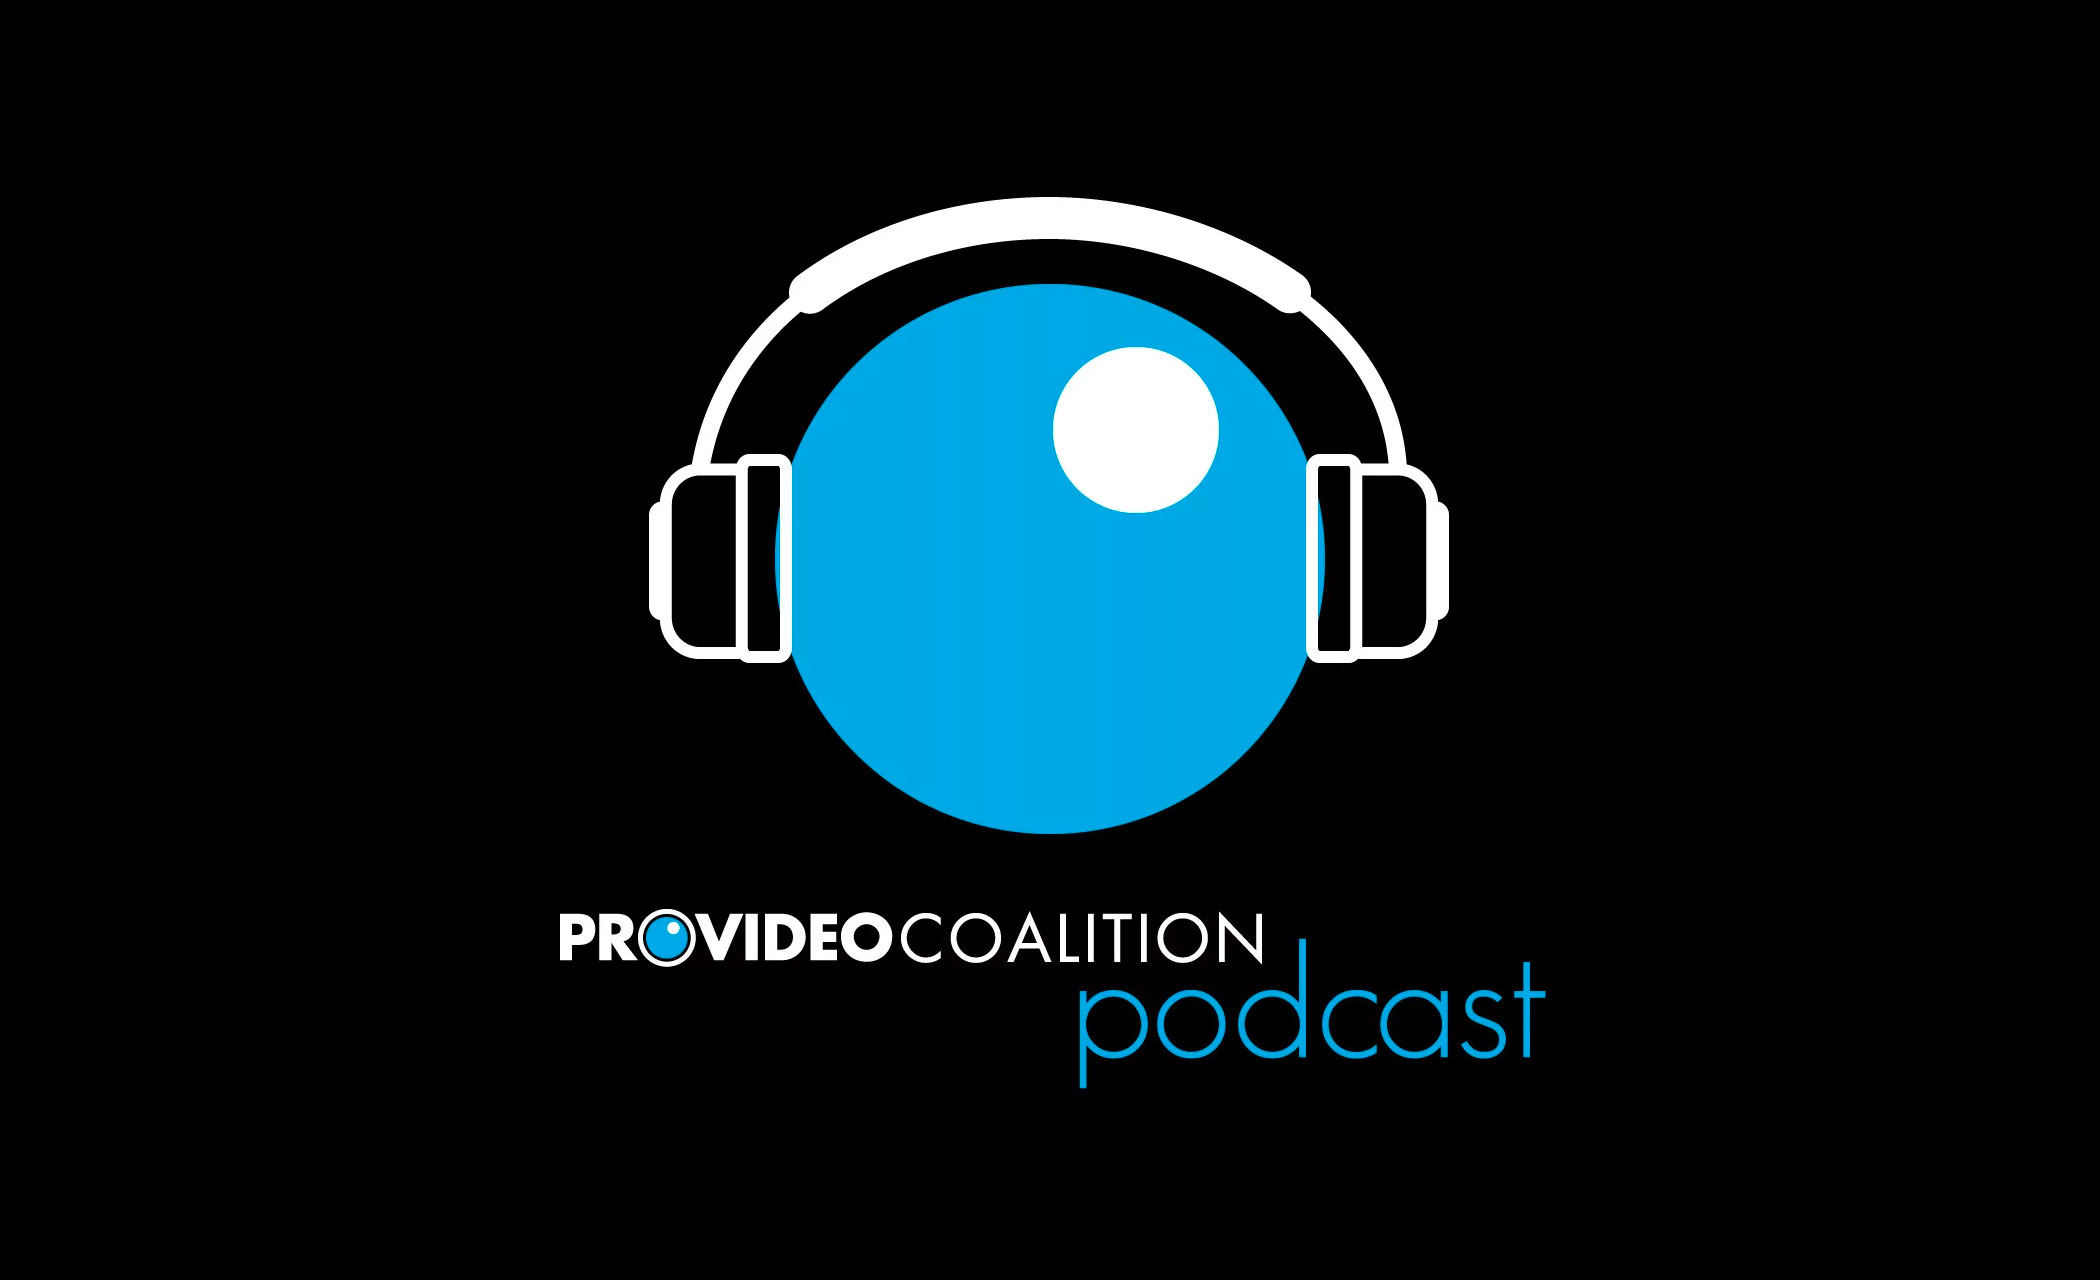 Provideo Coalition Podcast episode 2